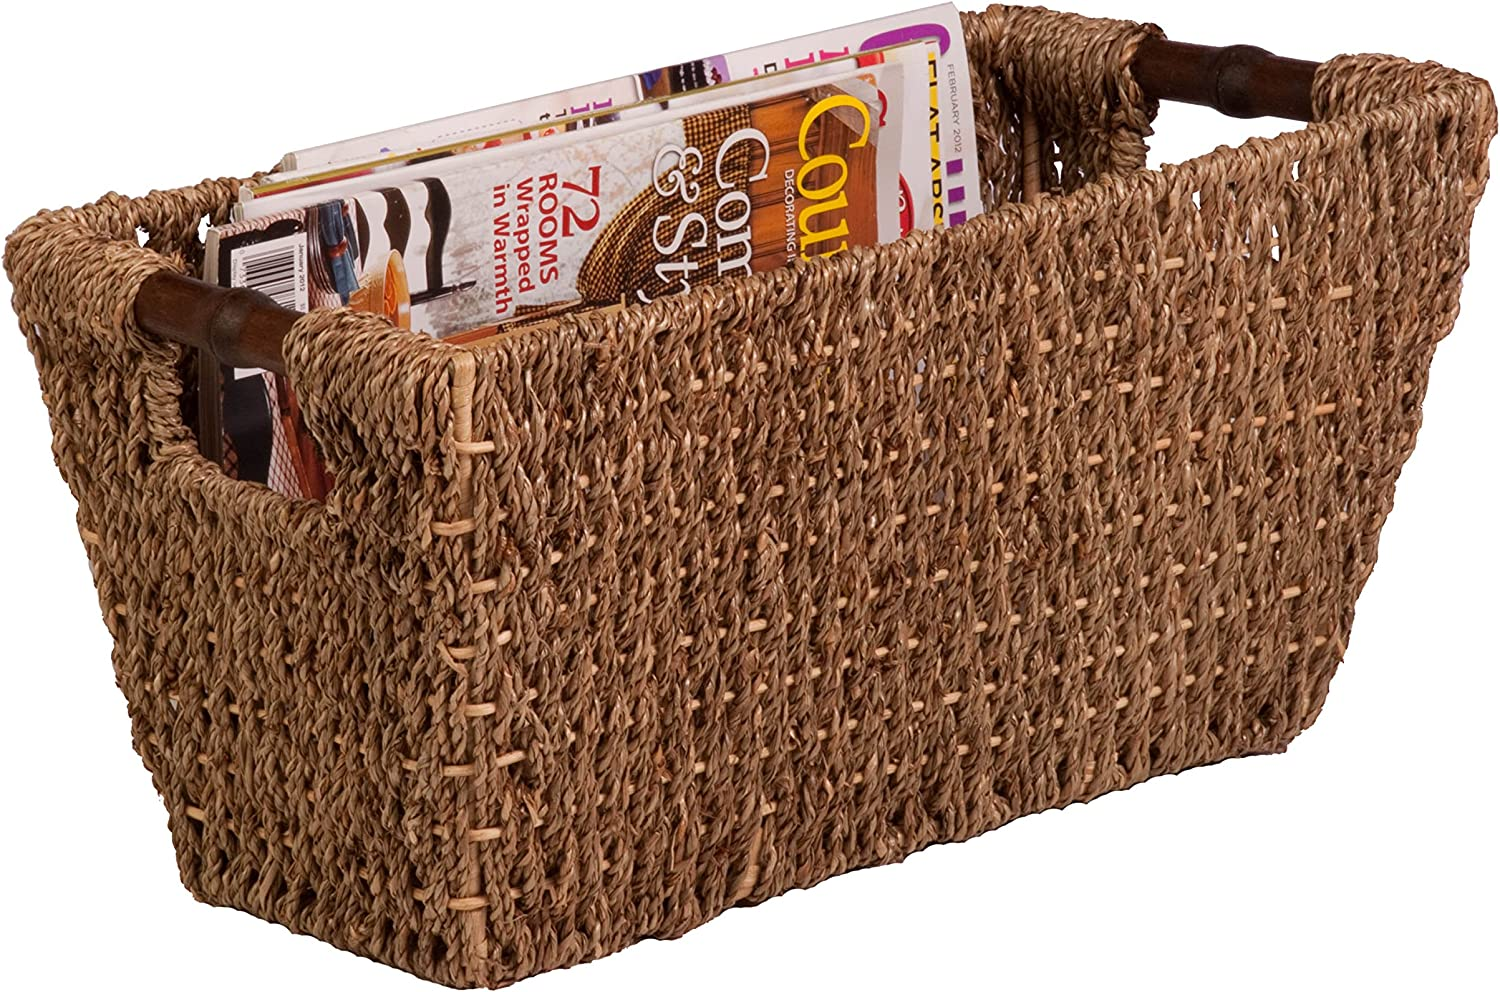 Honey-Can-Do STO-02965 Sea Grass Basket Tote with Handles, 17 by 9 by 8-Inch, Natural